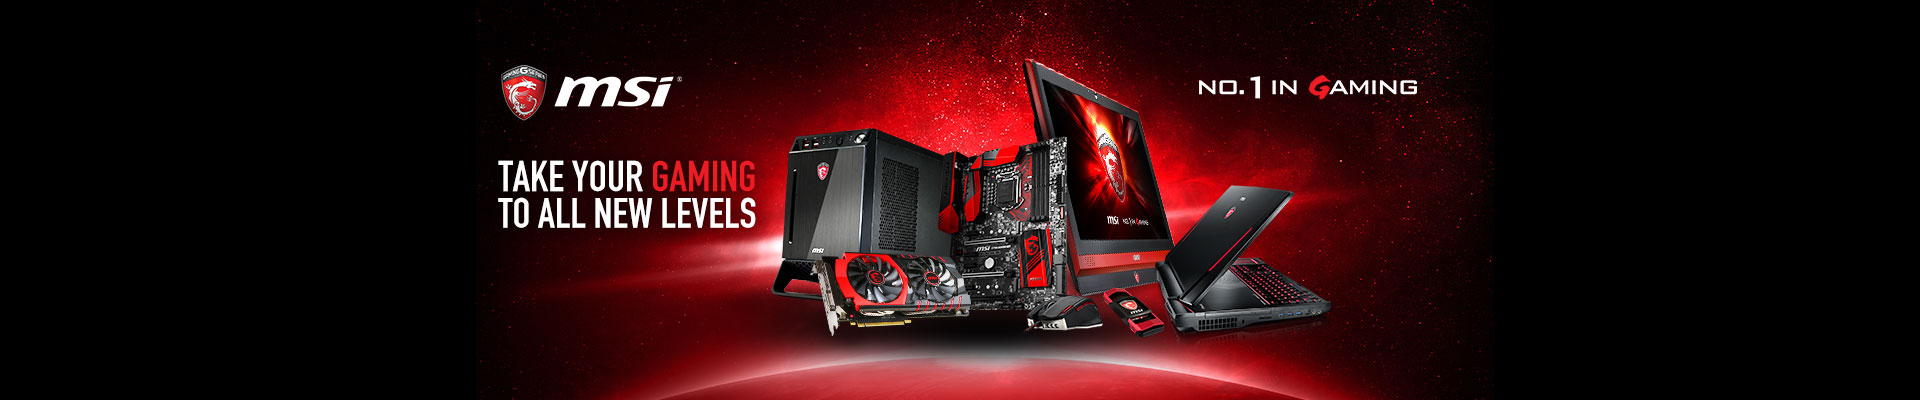 MSI No.1 in Gaming